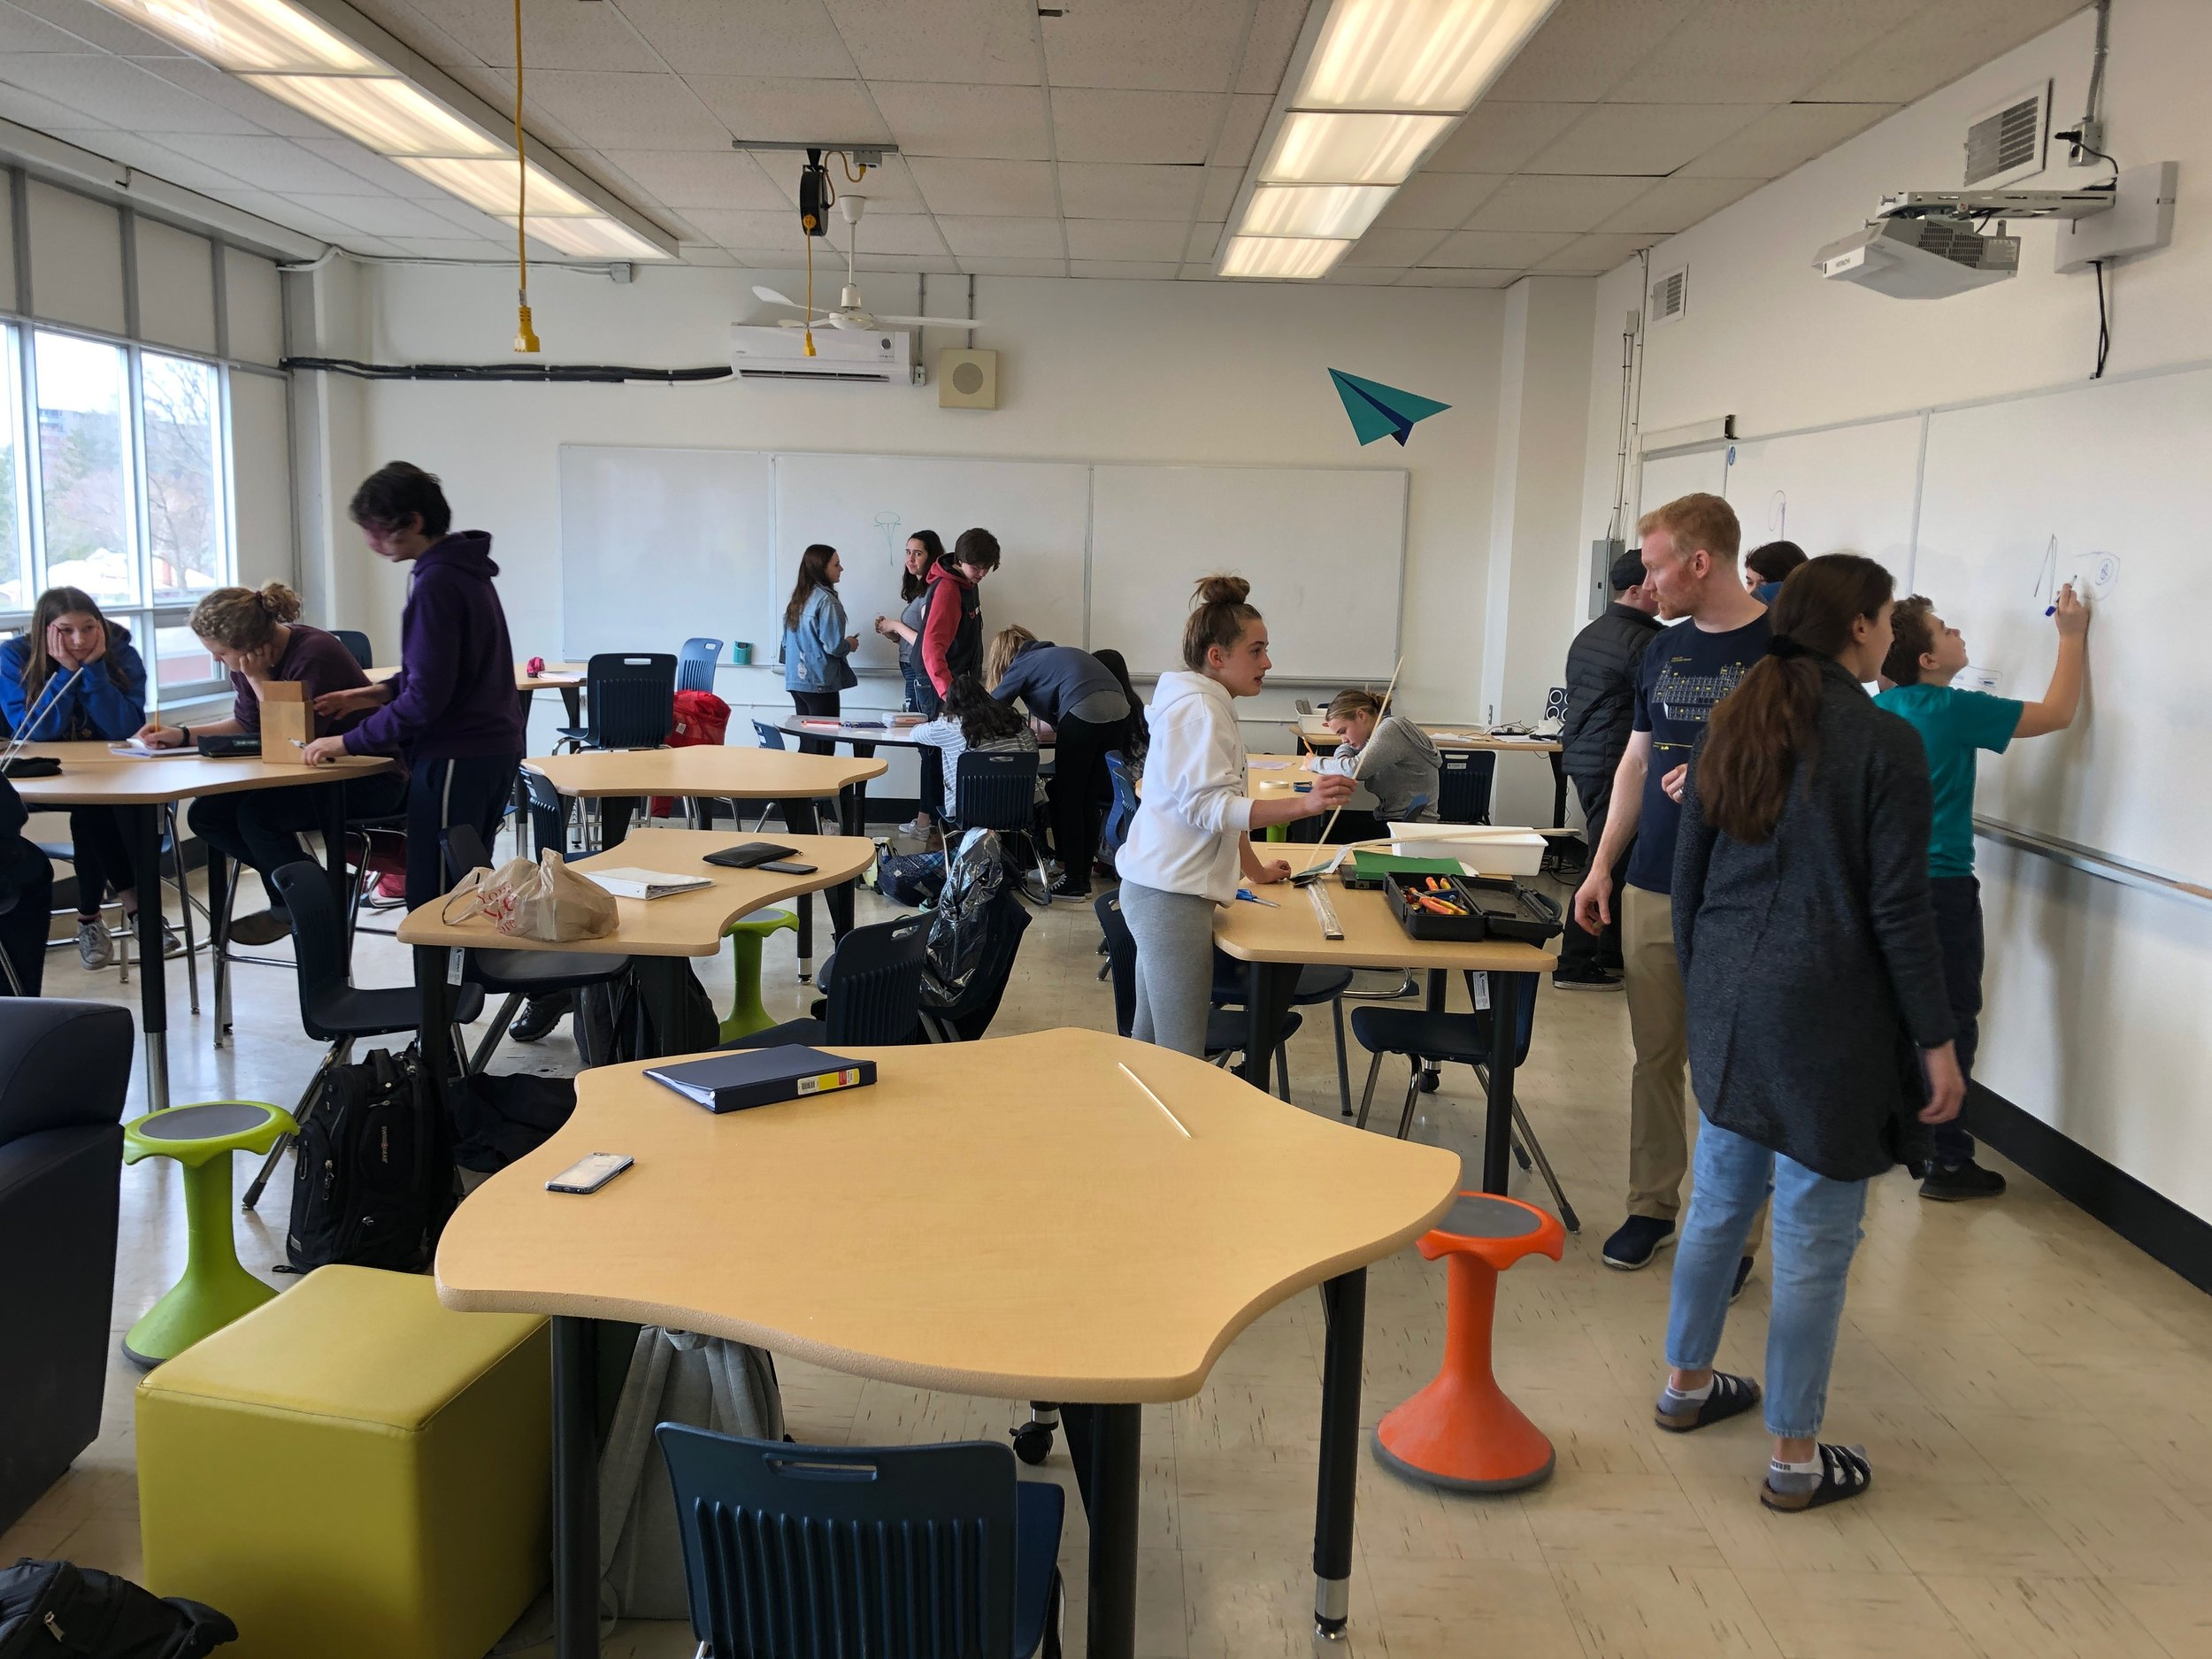 Grade 9 Students designing in the WONDER room in the Burlington Central SHIFT space